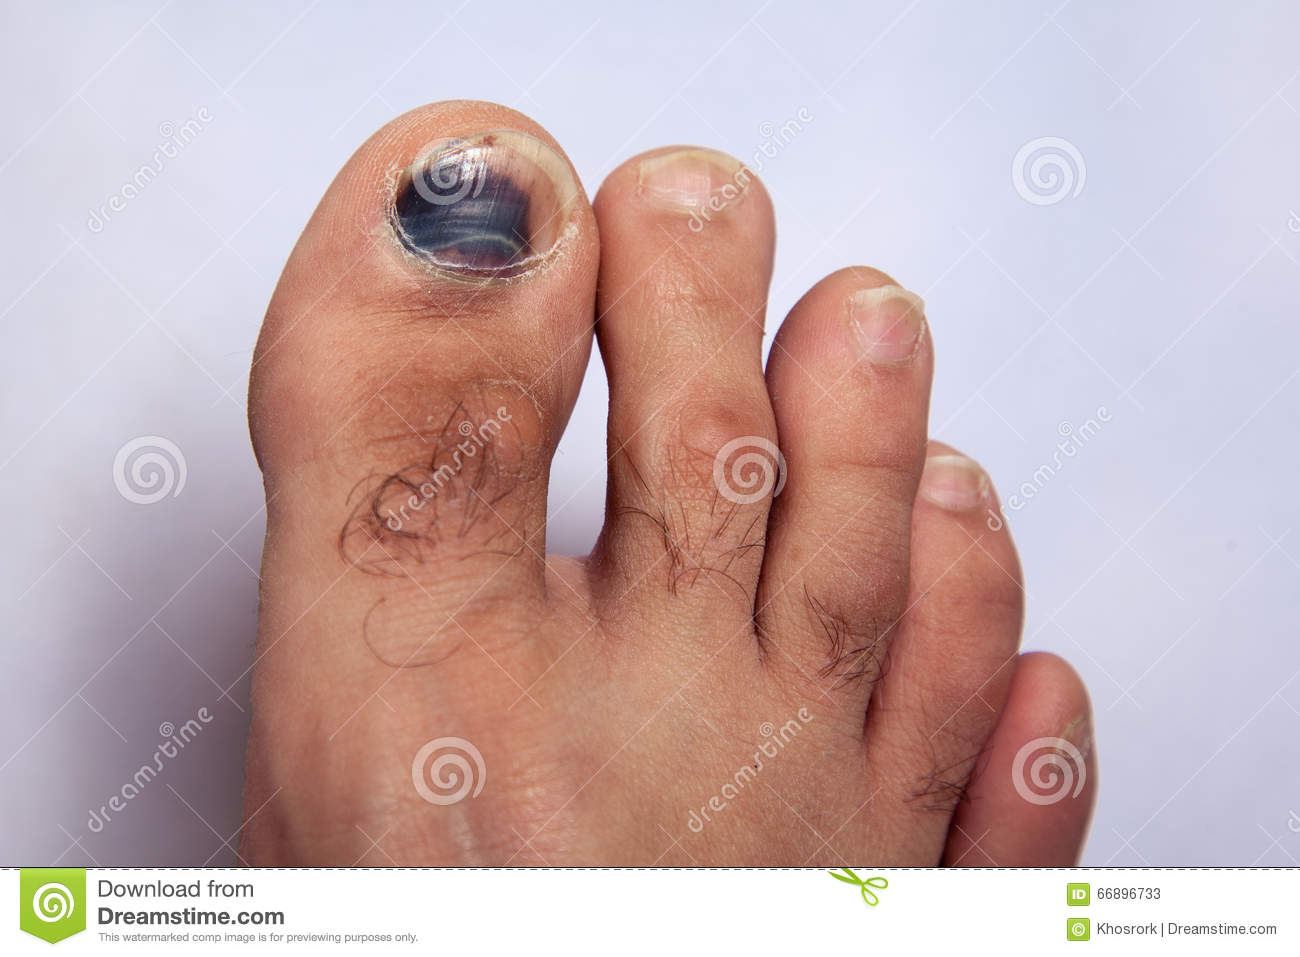 Bruise On Toe Nail On Right Foot Stock Image - Image of accident ...